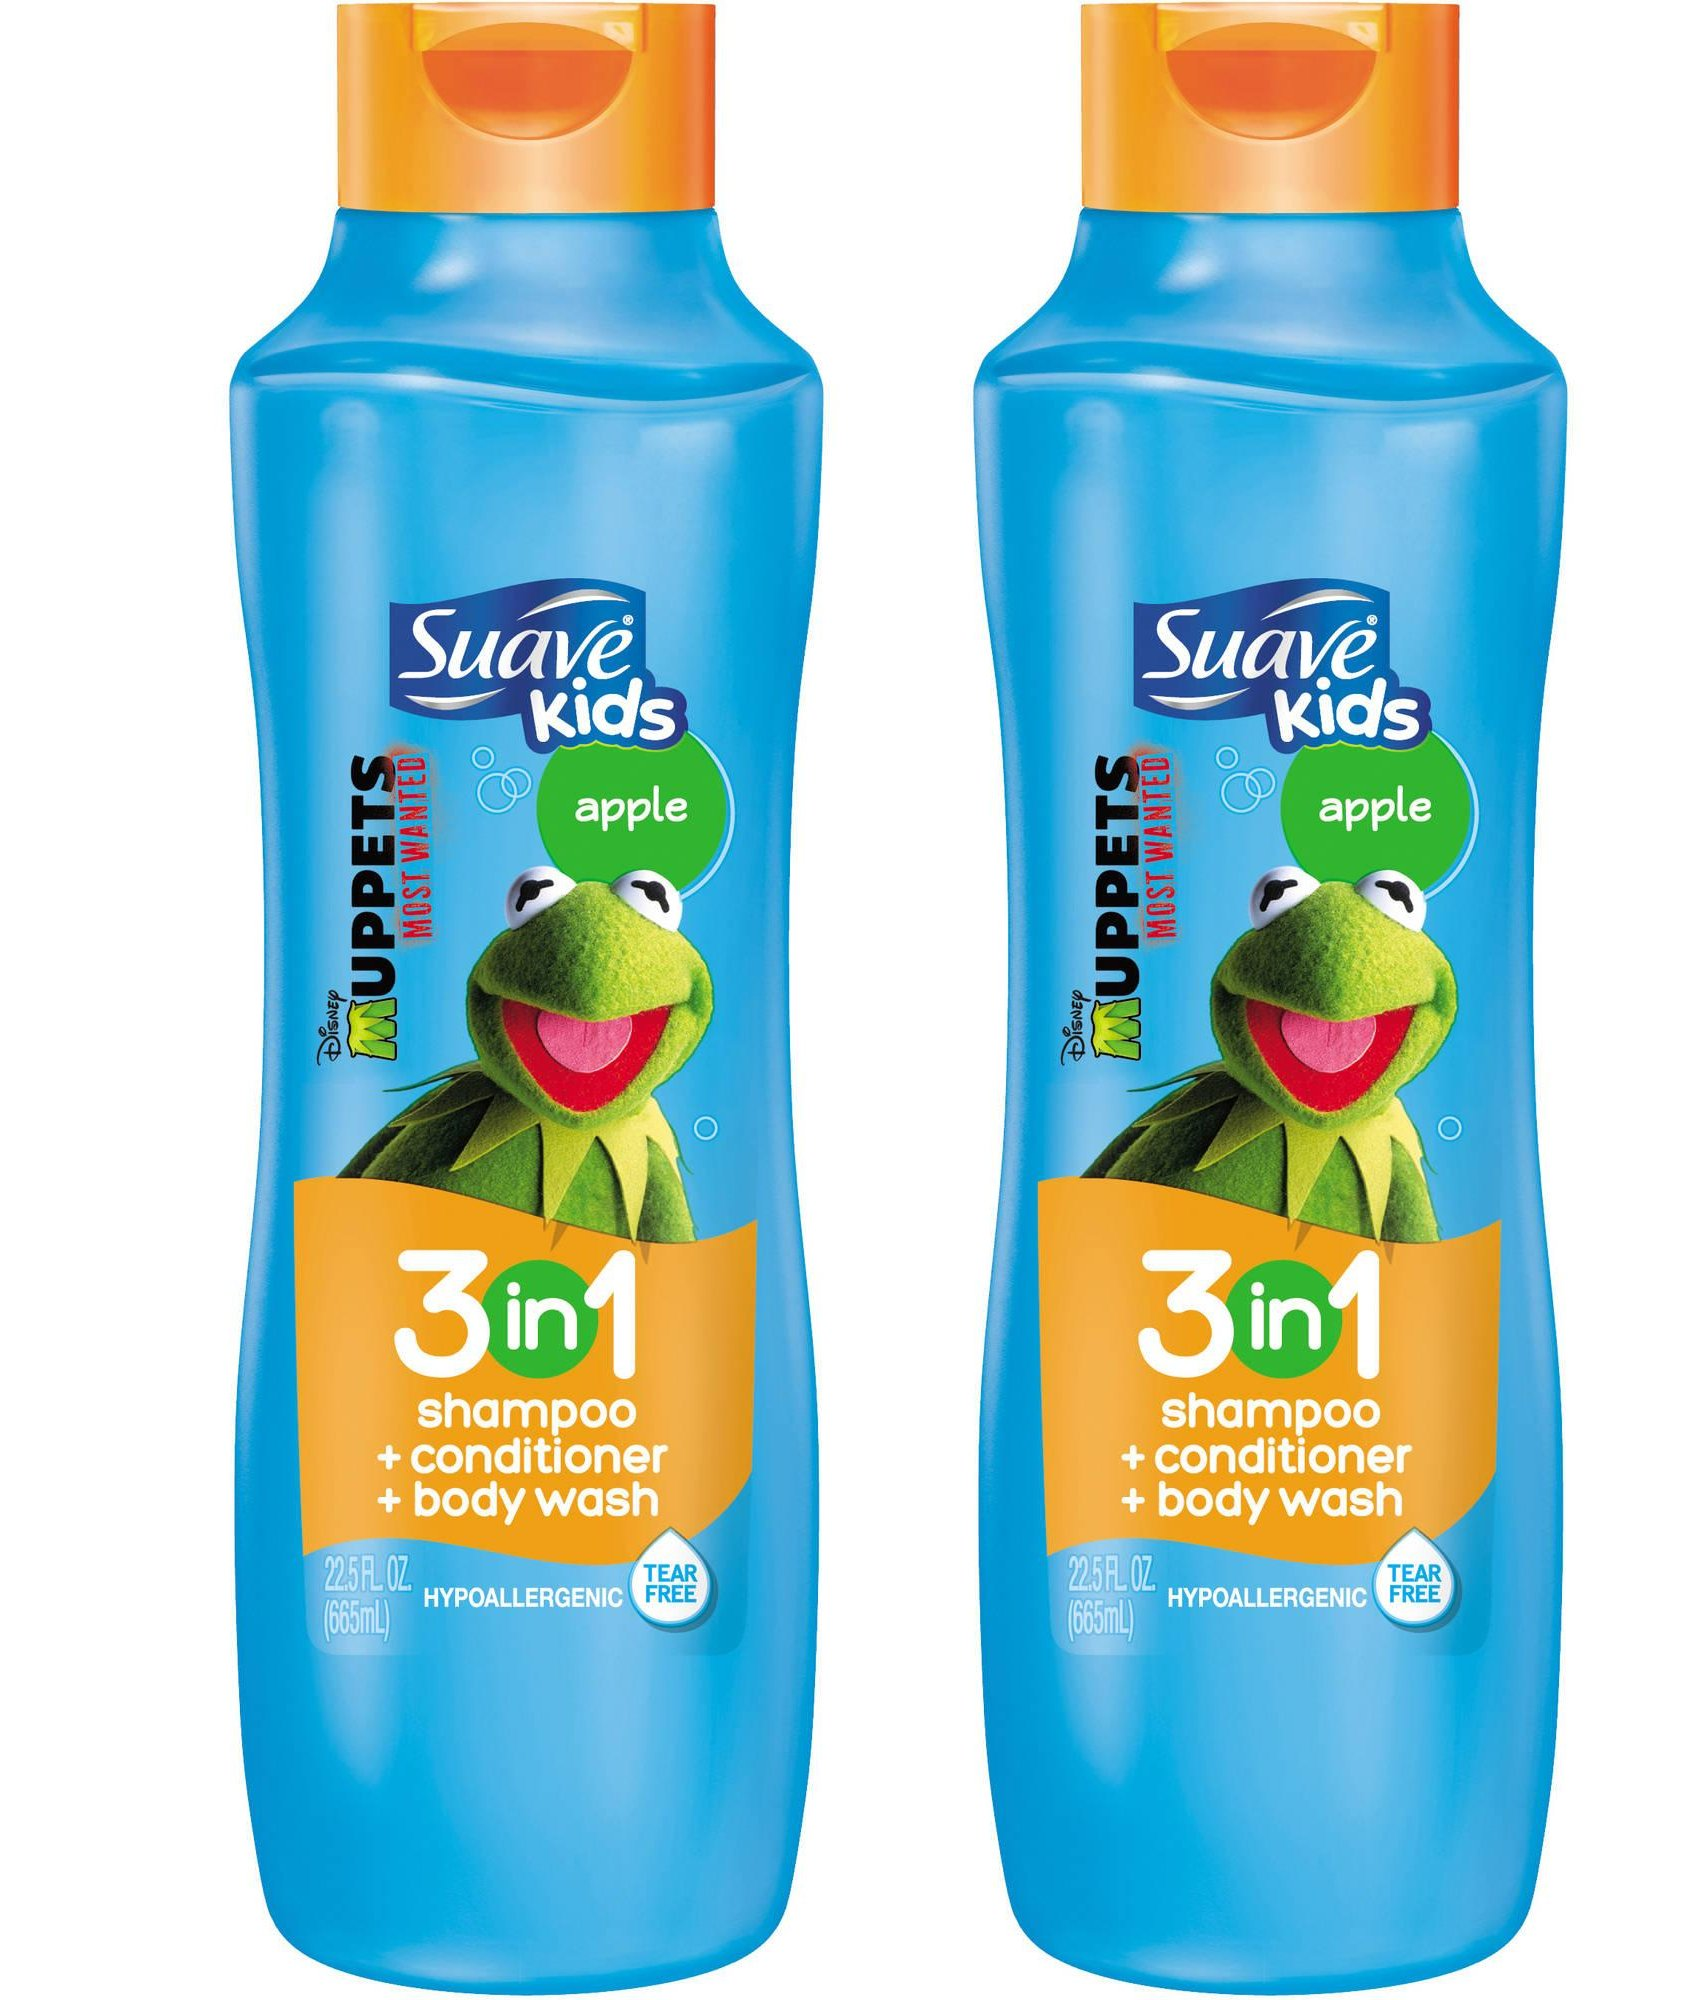 Suave Kids 3 in 1 Shampoo / Conditioner / Body Wash, Splashing Apple Toss- 22.5 oz, 2 Pack